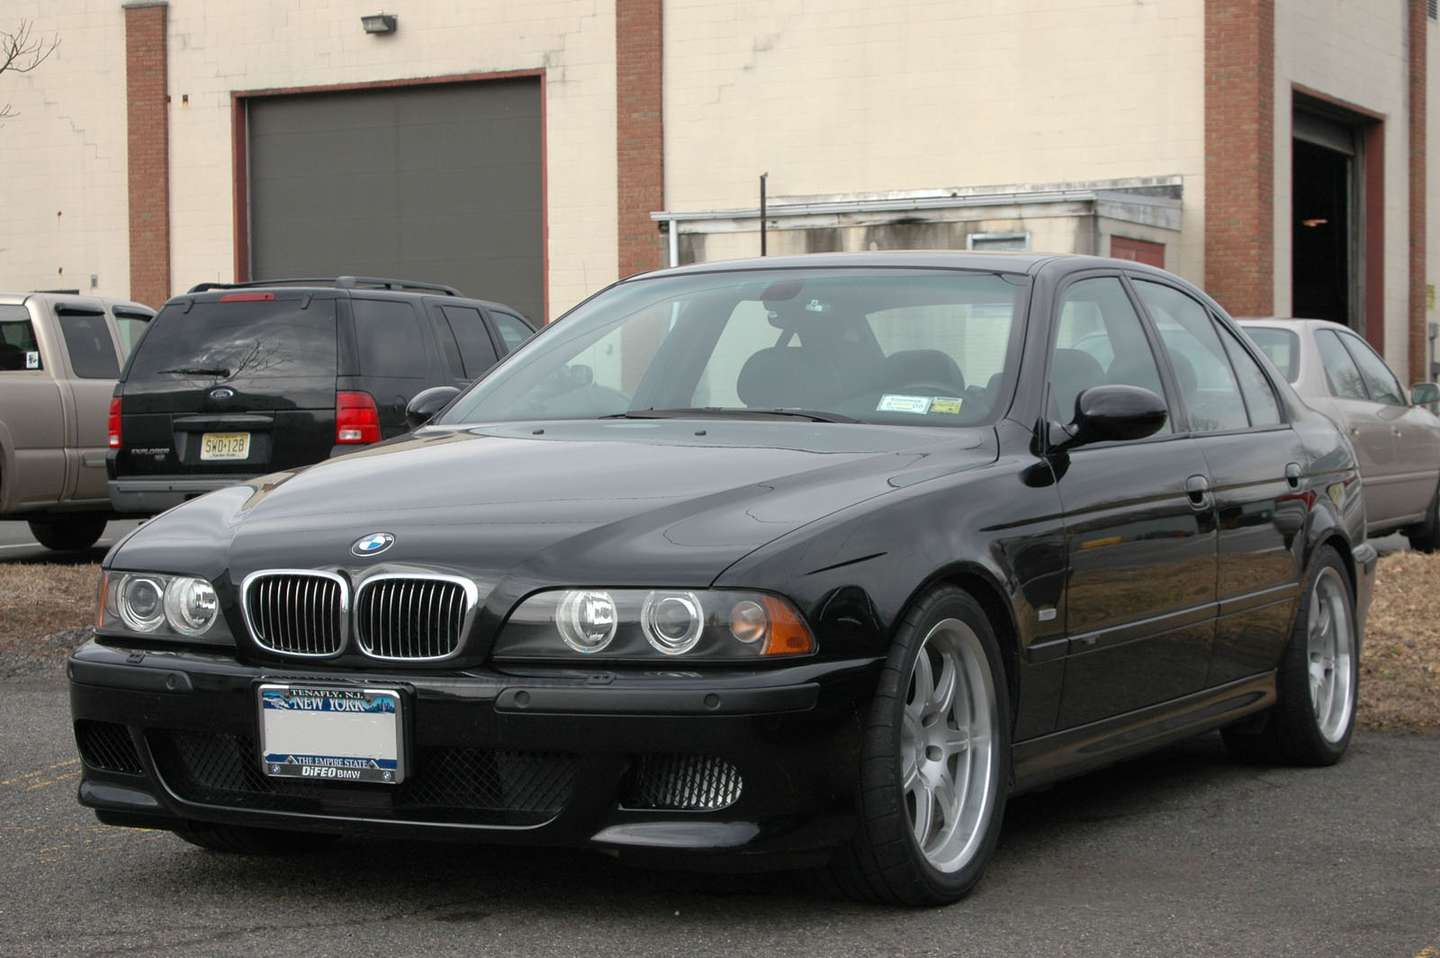 pictures of bmw cars  u00bb page 14 2001 BMW 7 Series 2000 BMW 7 Series